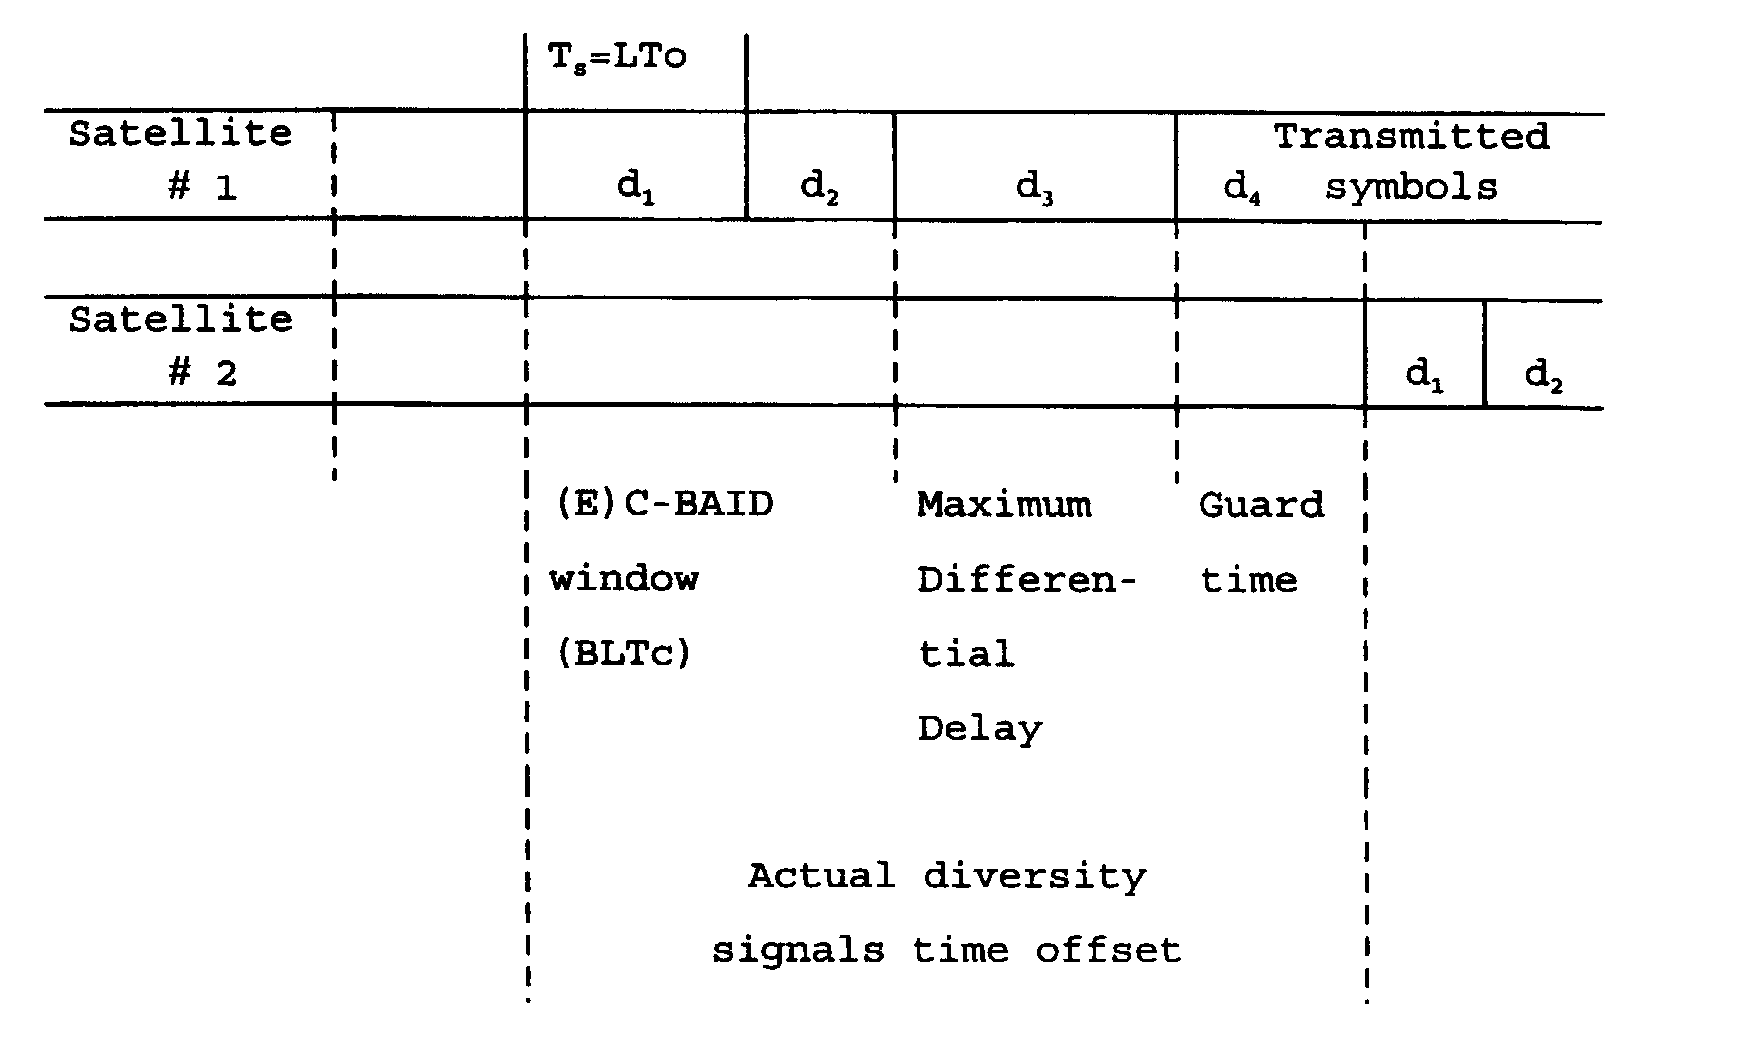 Ep0936749a1 Adaptive Receiver For Cdma Communication System Figs 1and 2 Shows Transmitter And Circuit Respectivelythe This Modulator Symbol Staggering Is Then Recovered At The Demodulator Side By Means Of Delay Adjustment Block Shown In Fig 18